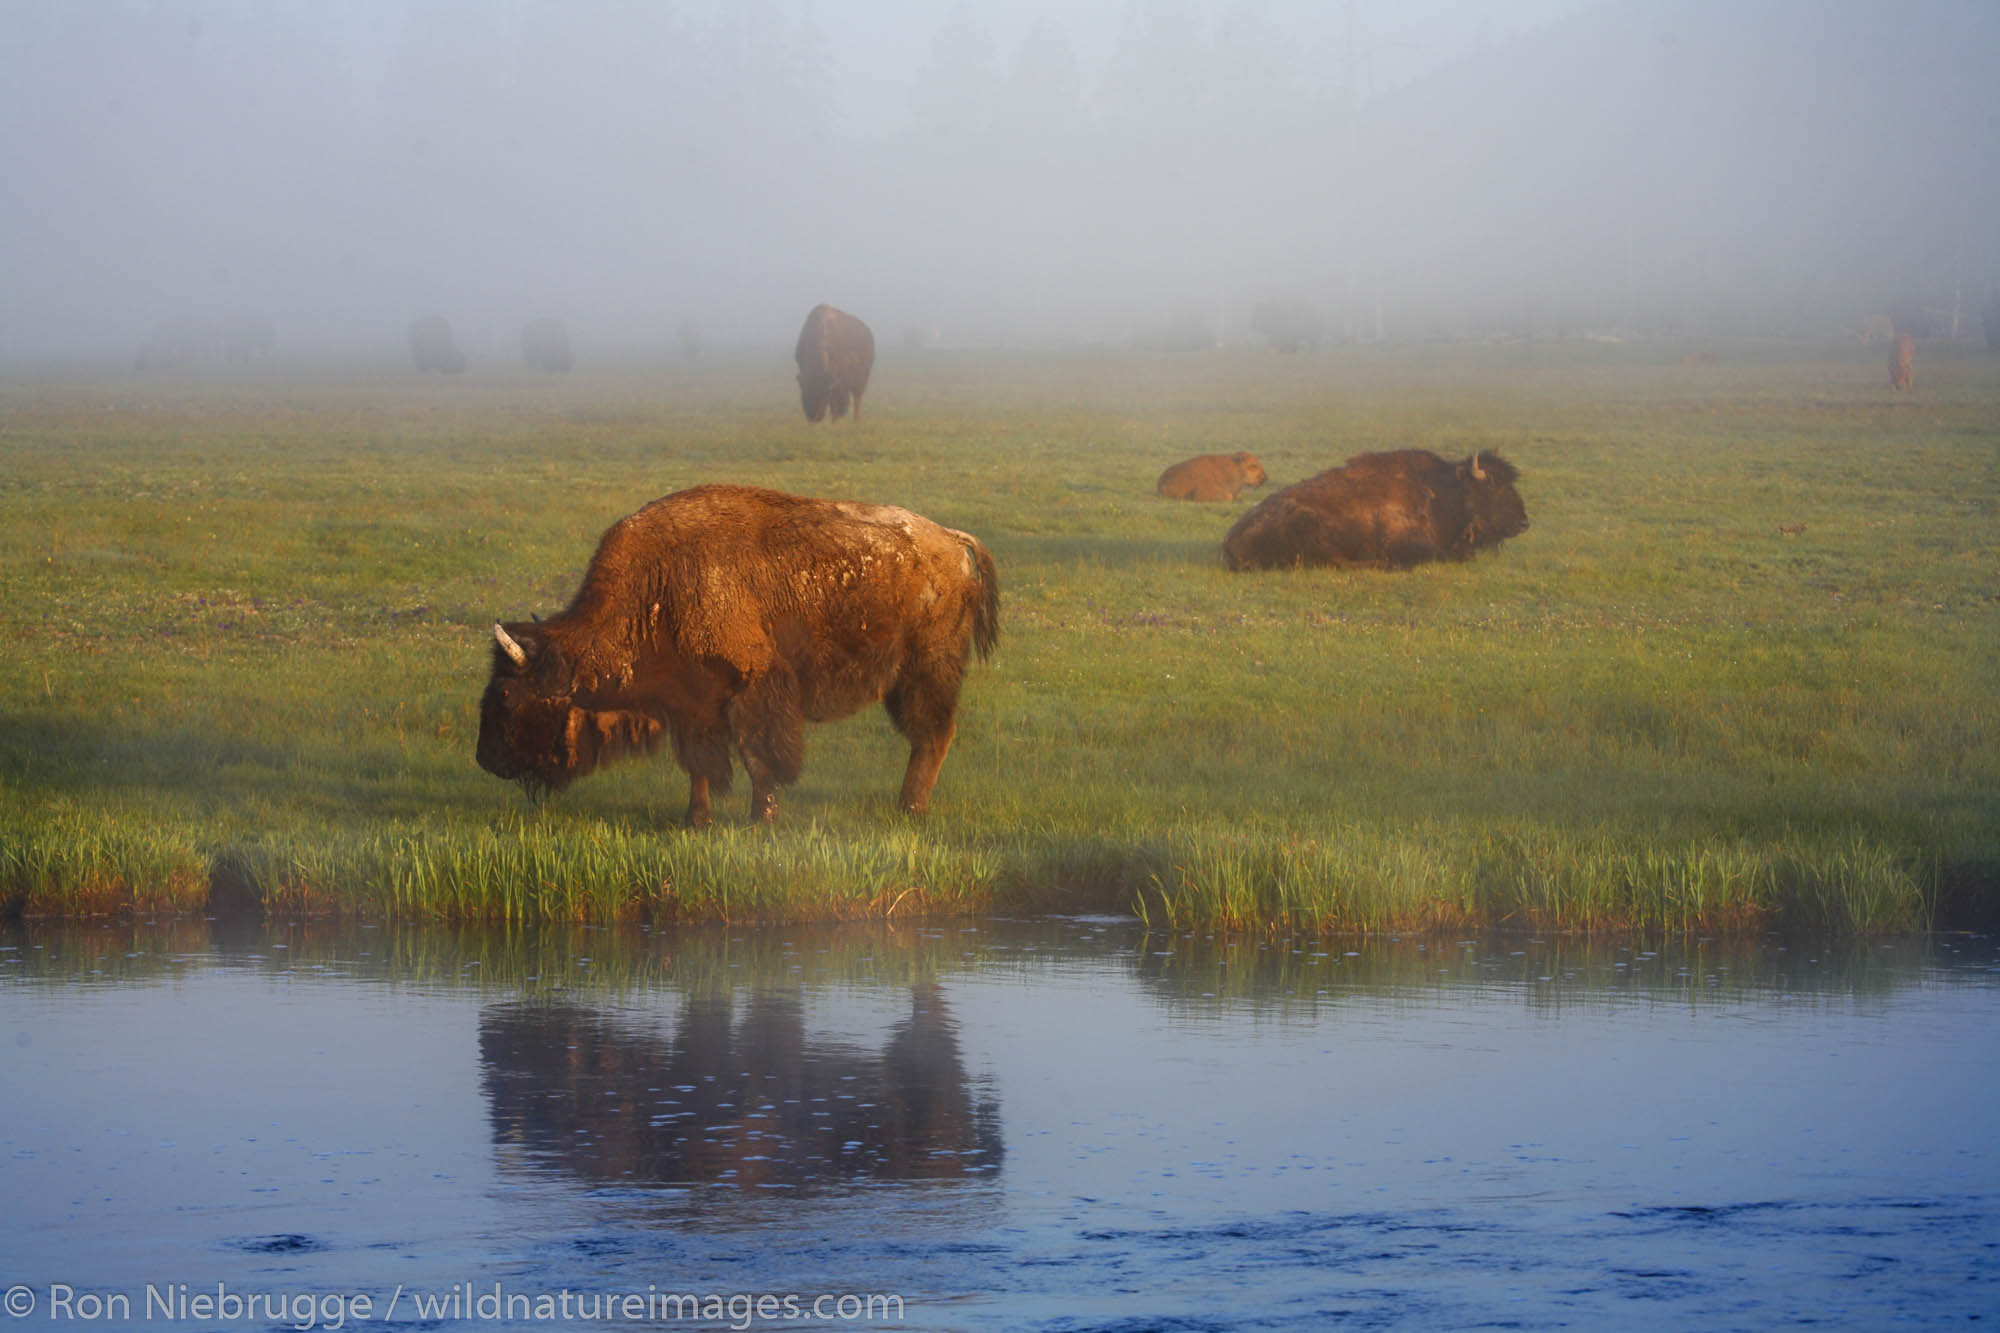 Buffalo ( Bison ) along the Firehole River in Yellowstone National Park, Wyoming.